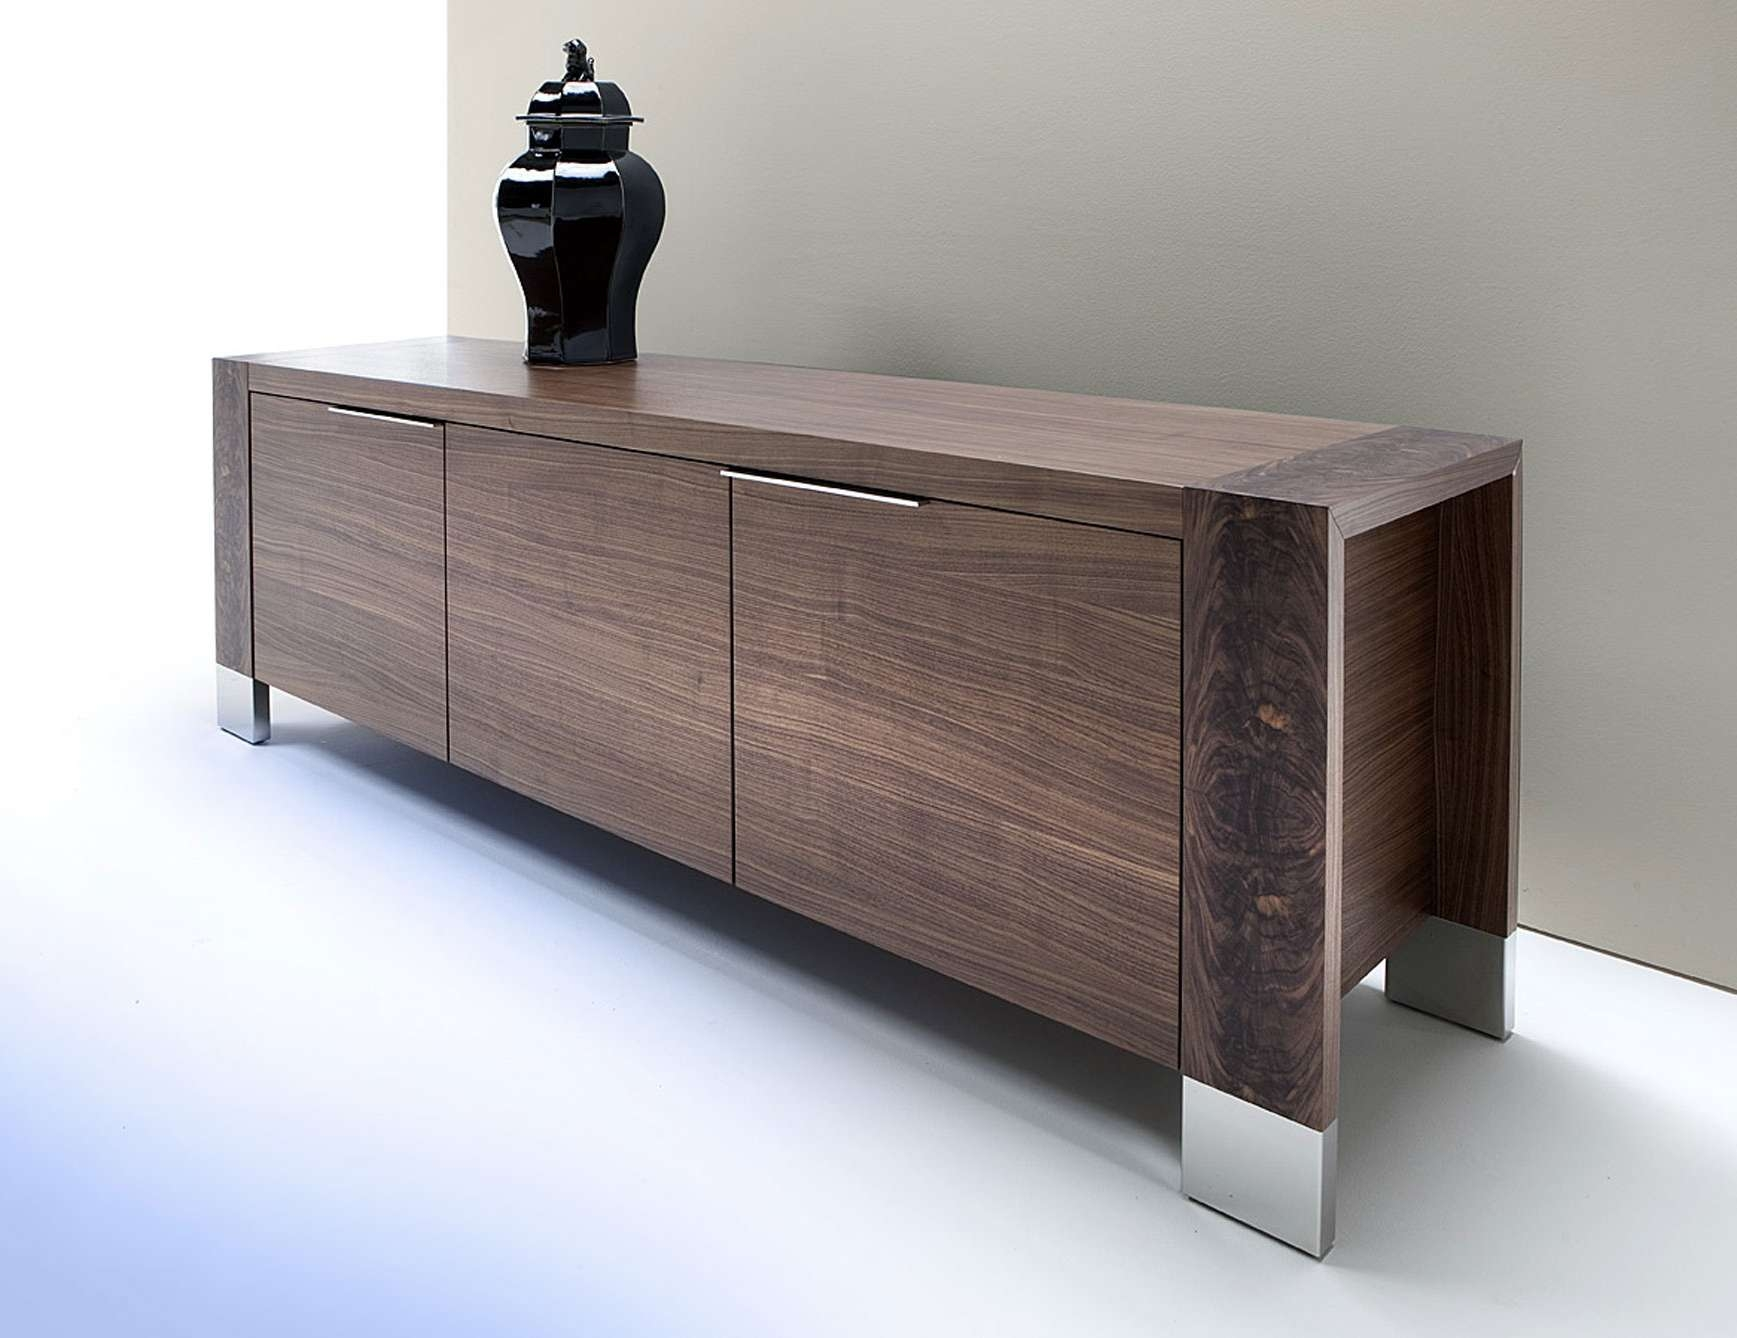 Costantini | Glas Italia | Credenzas / Sideboards Furniture Within Magic The Gathering Sideboards (View 5 of 24)